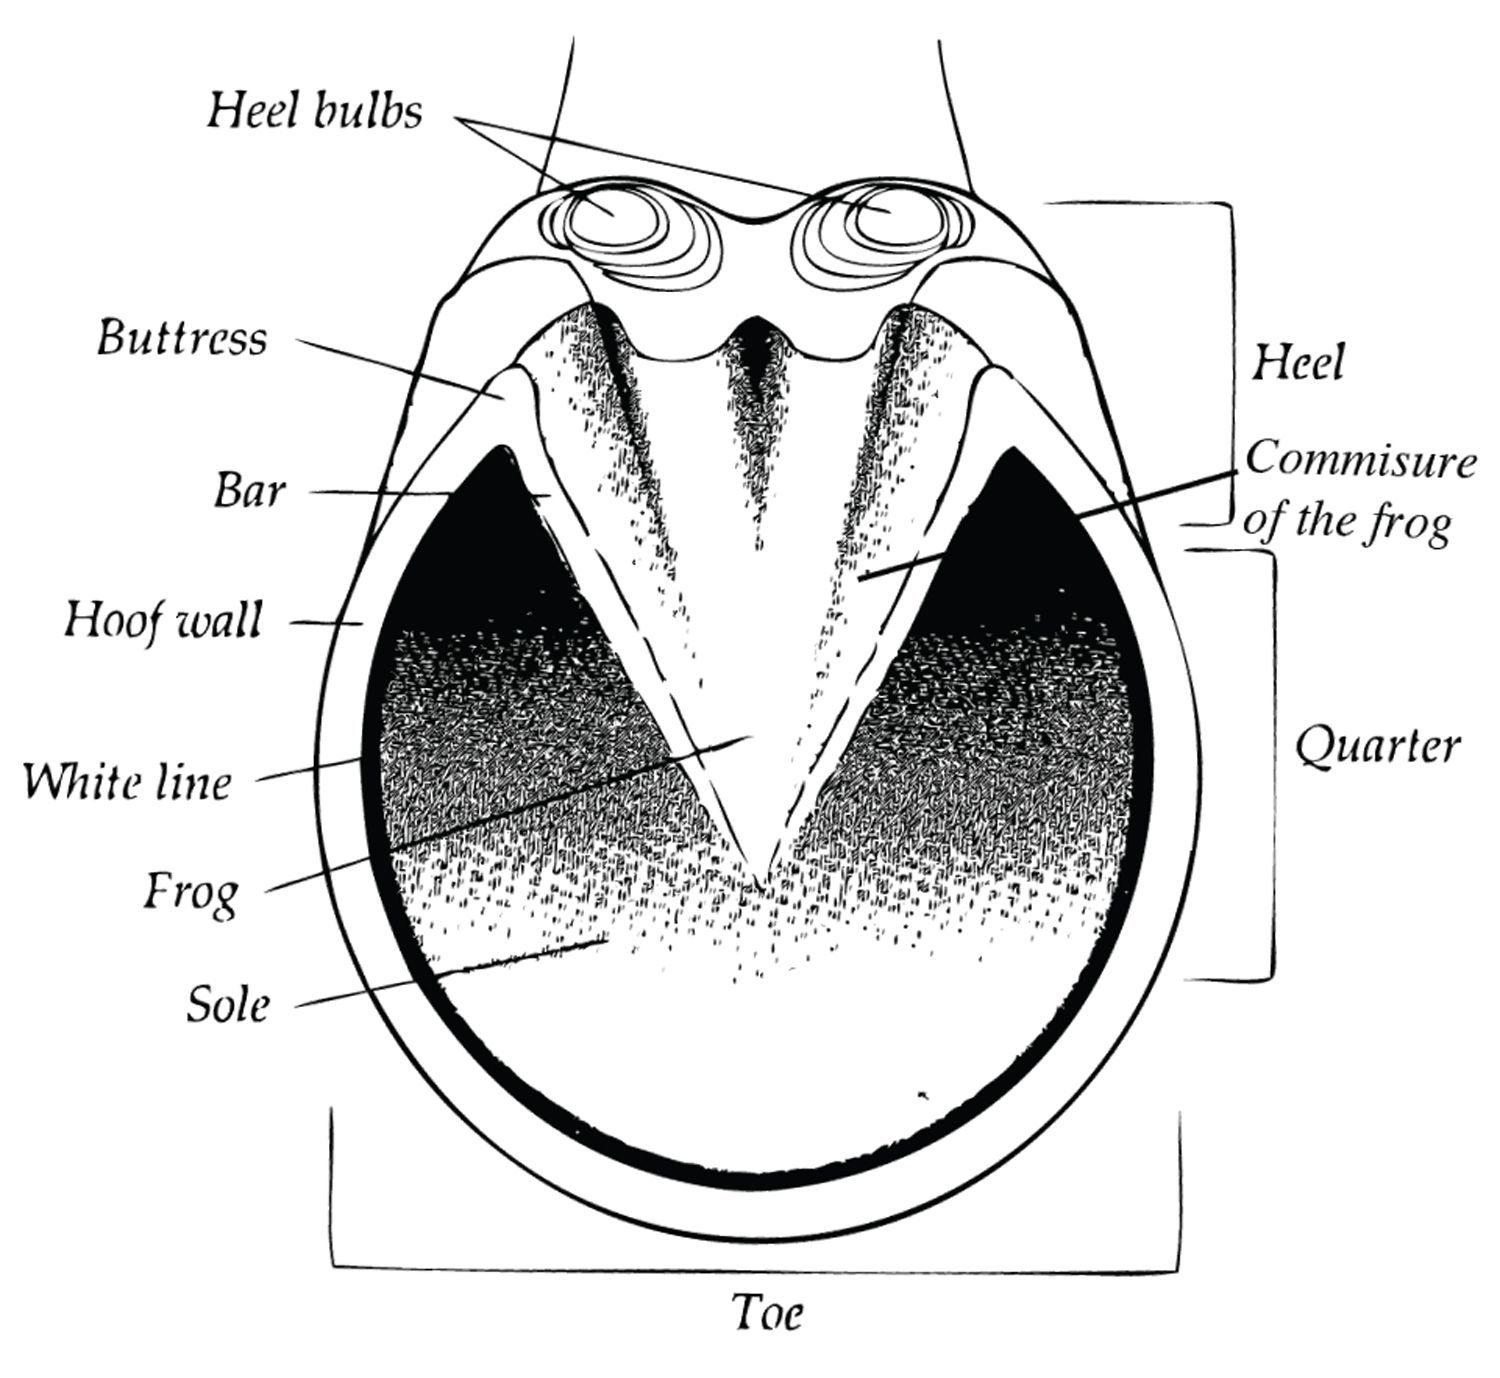 medium resolution of diagram of the parts of the equine hoof showing heel bulbs diagram of horse hoof heel bulb